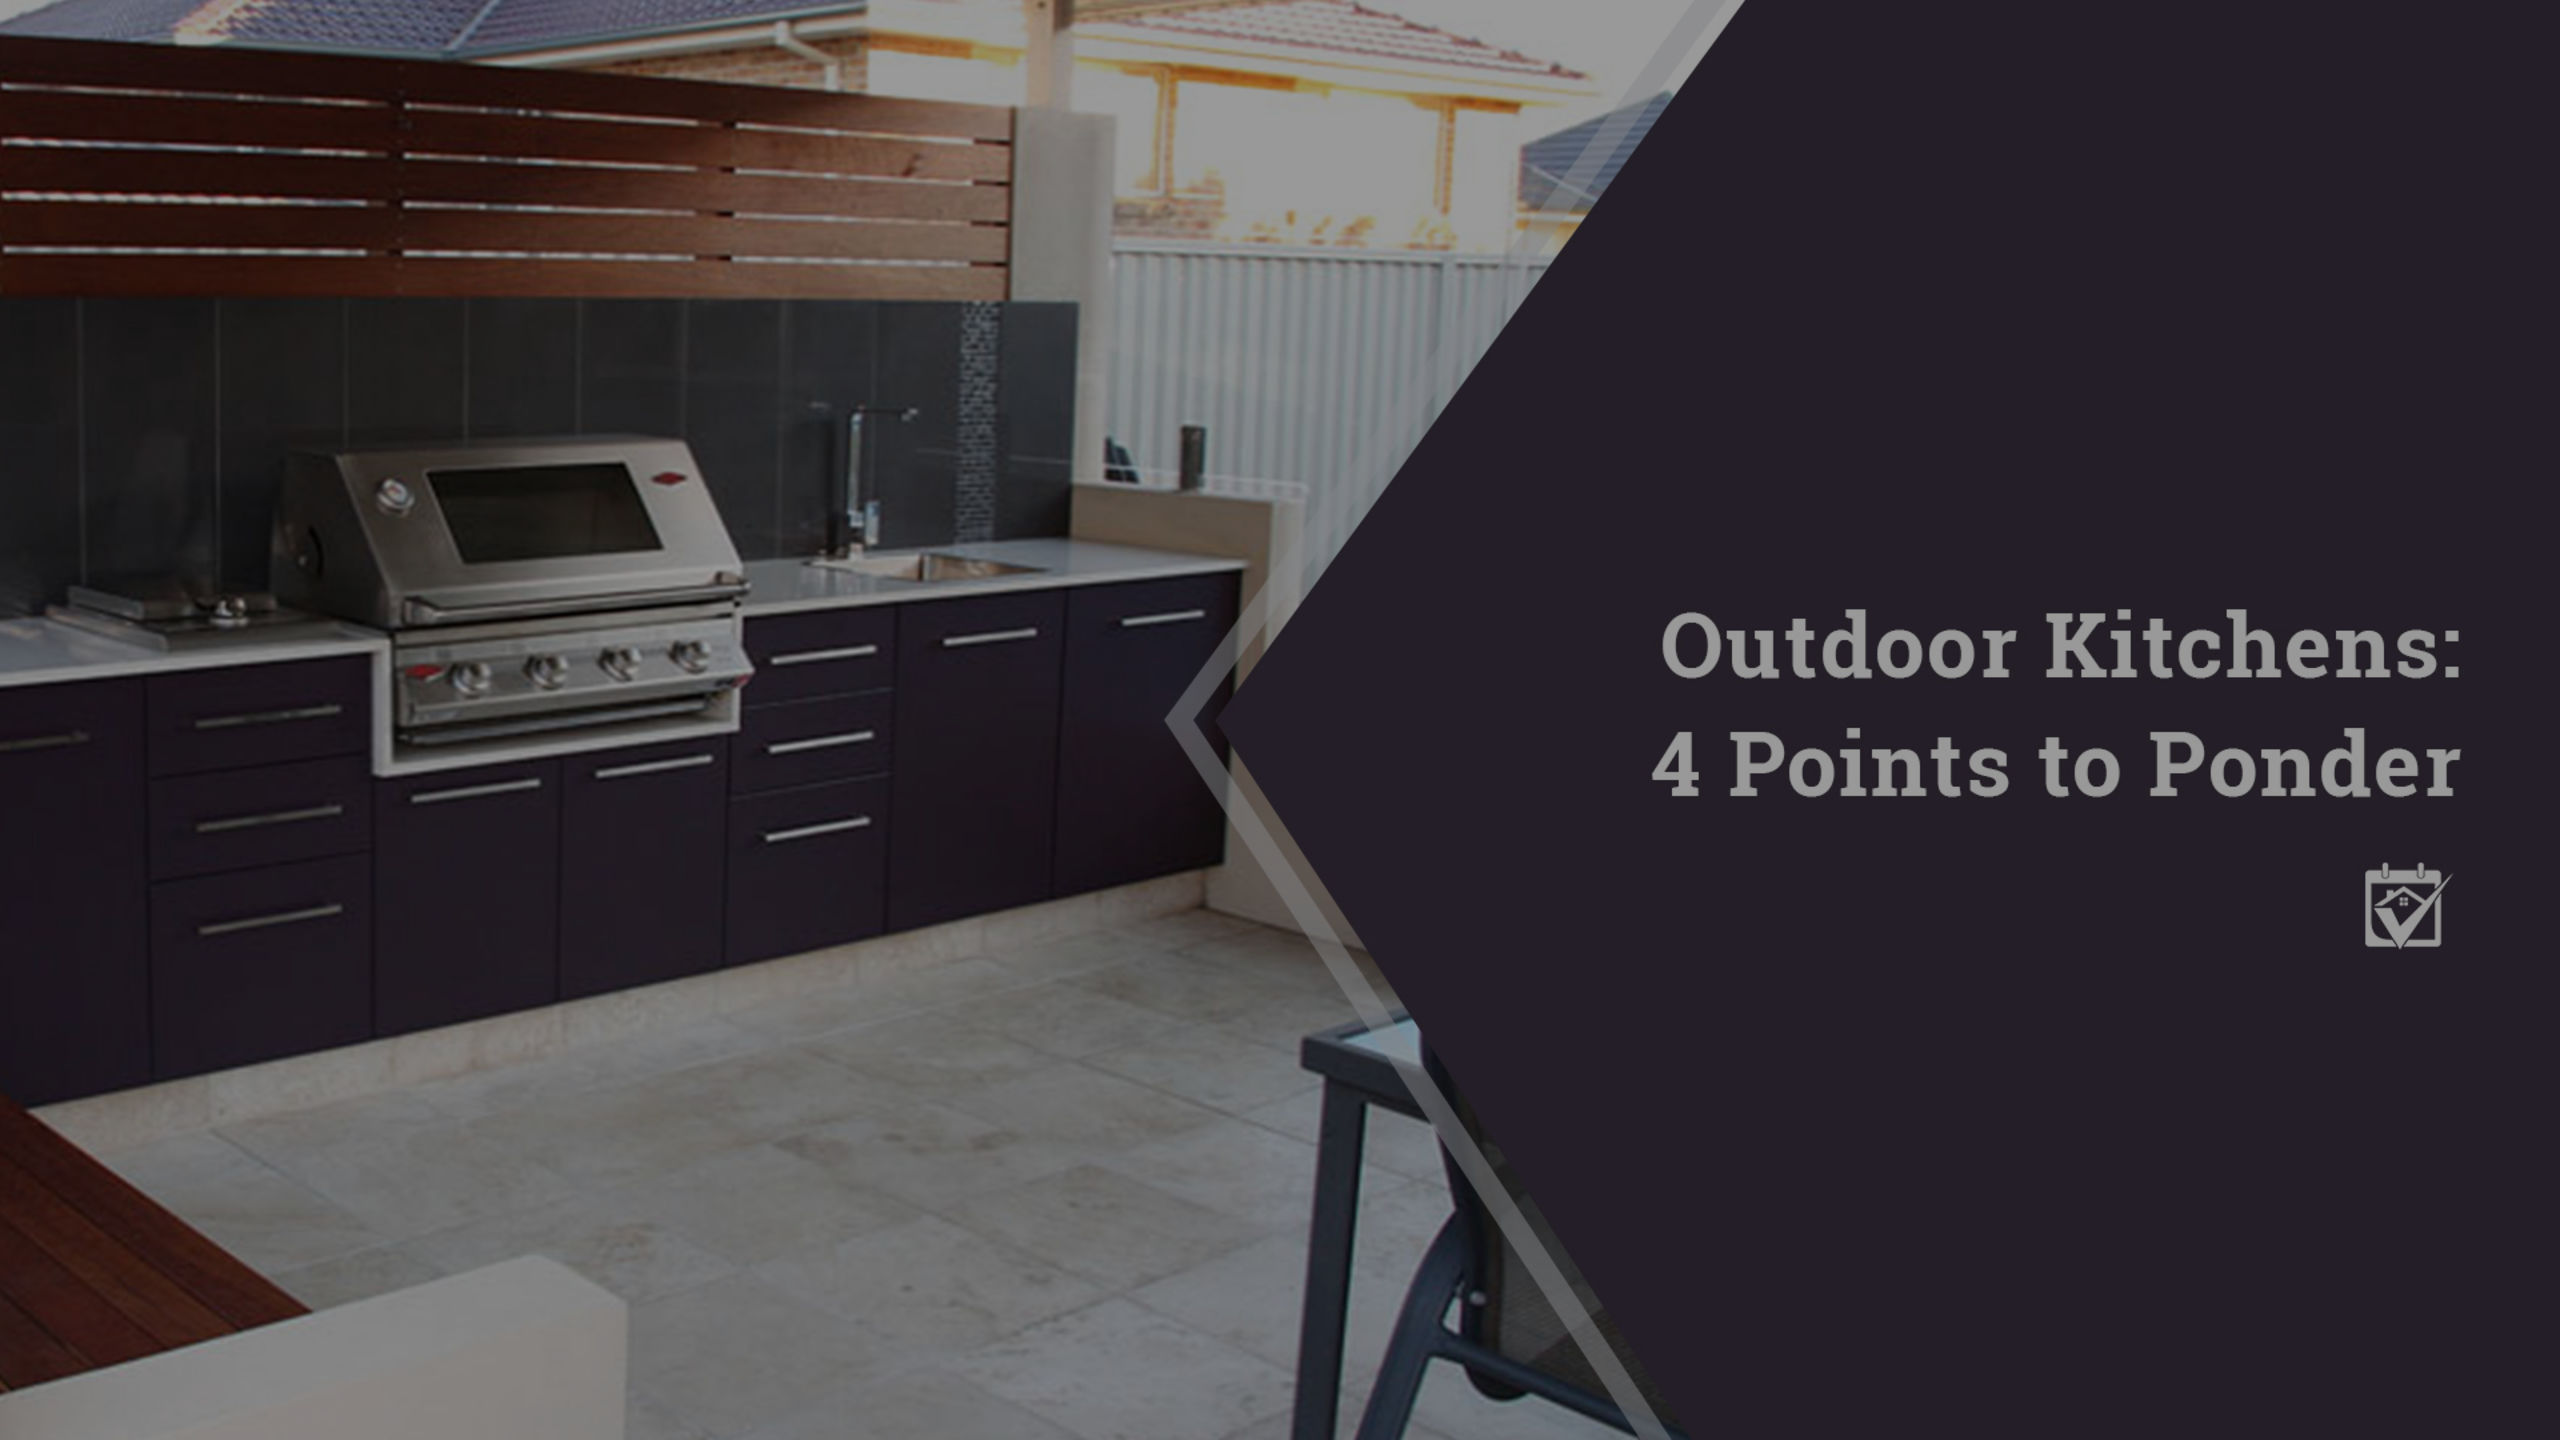 Outdoor Kitchens, Four Points to Ponder